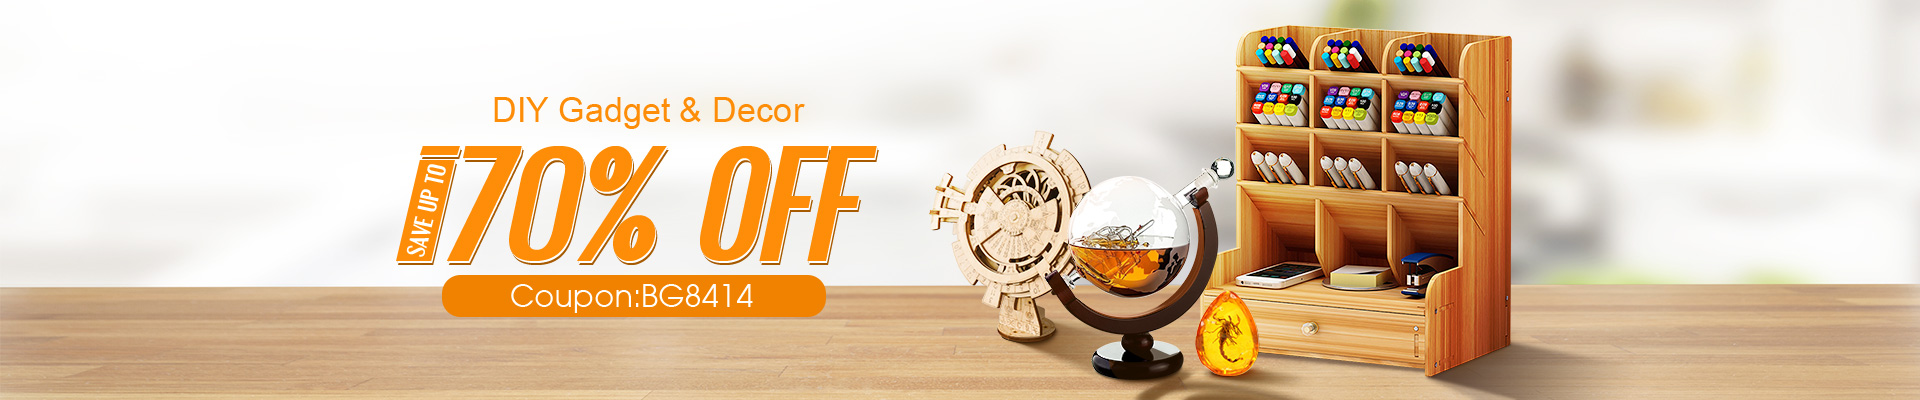 15% OFF for DIY Gadget and Decor